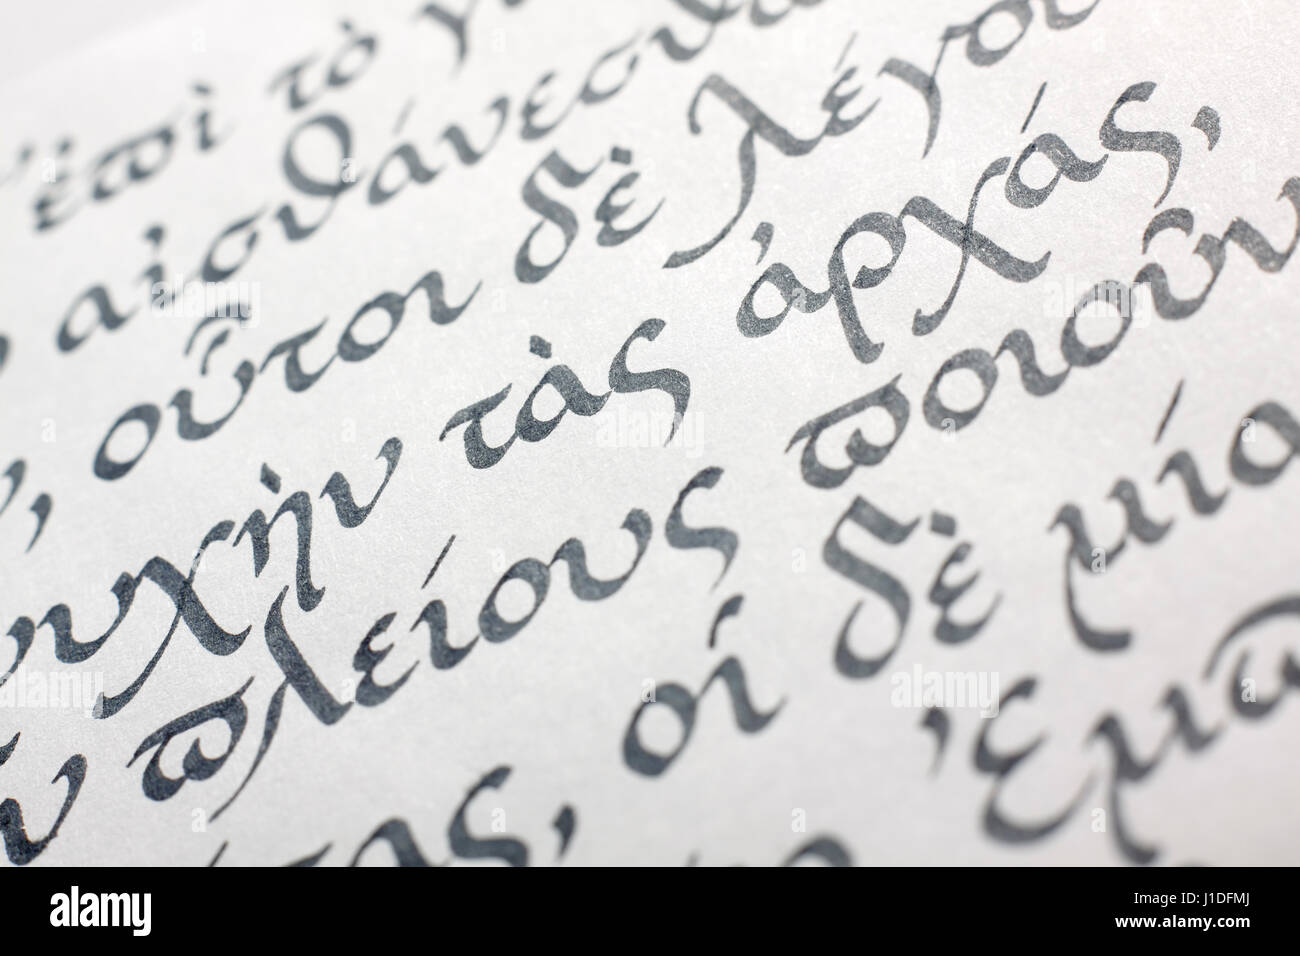 Close up view of ancient writing. Polytonic greek script. - Stock Image